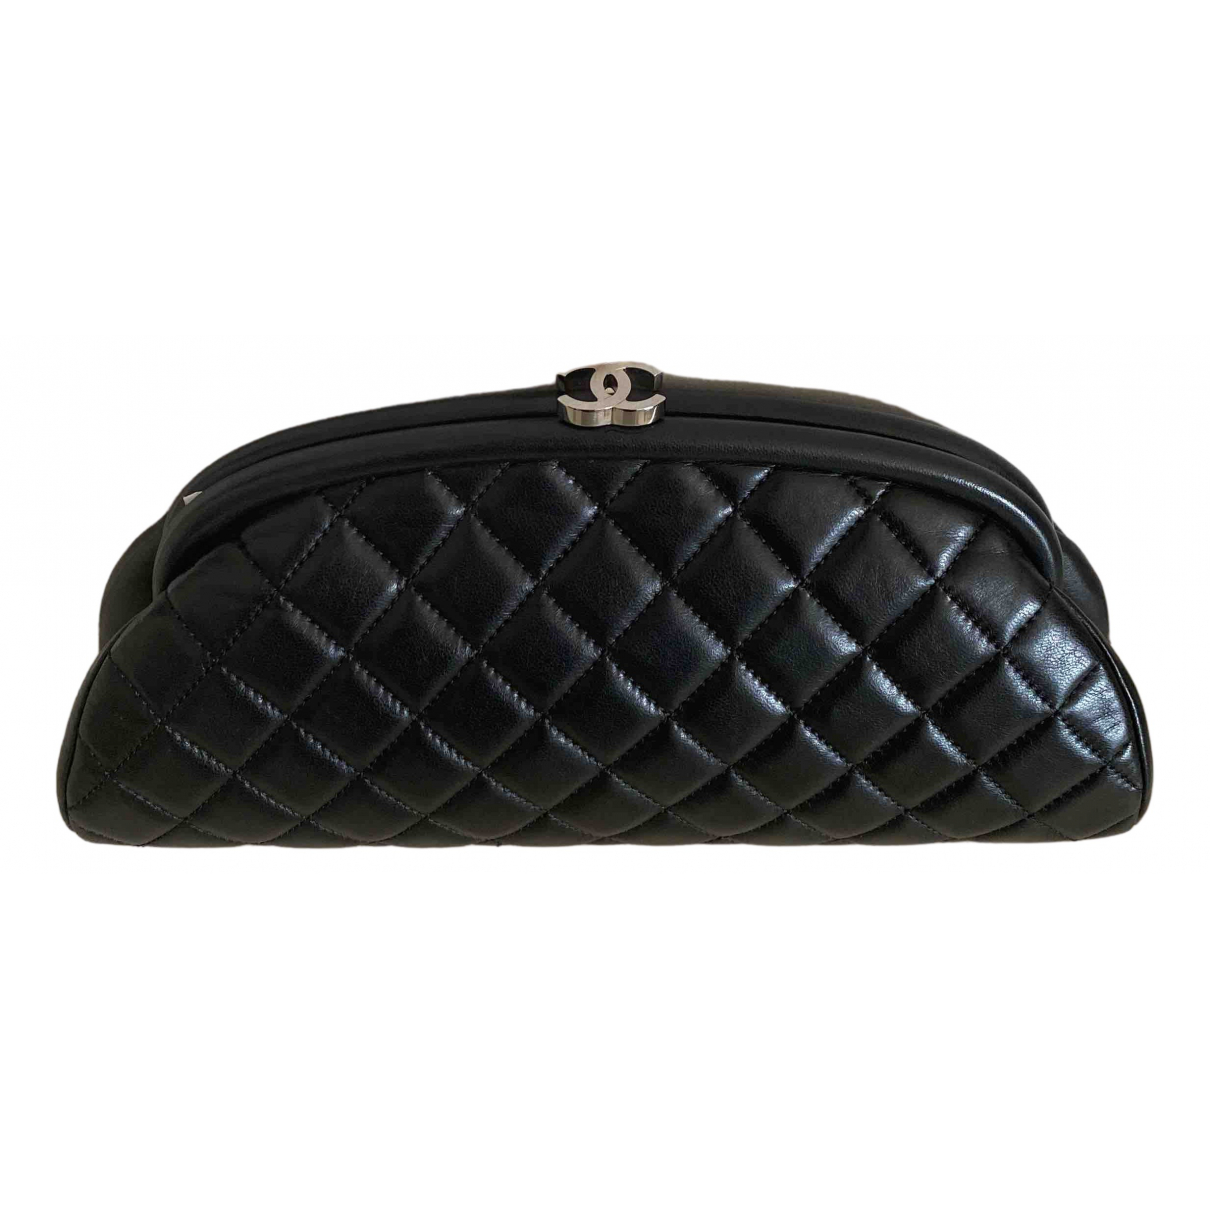 Chanel Mademoiselle Black Leather Clutch bag for Women \N